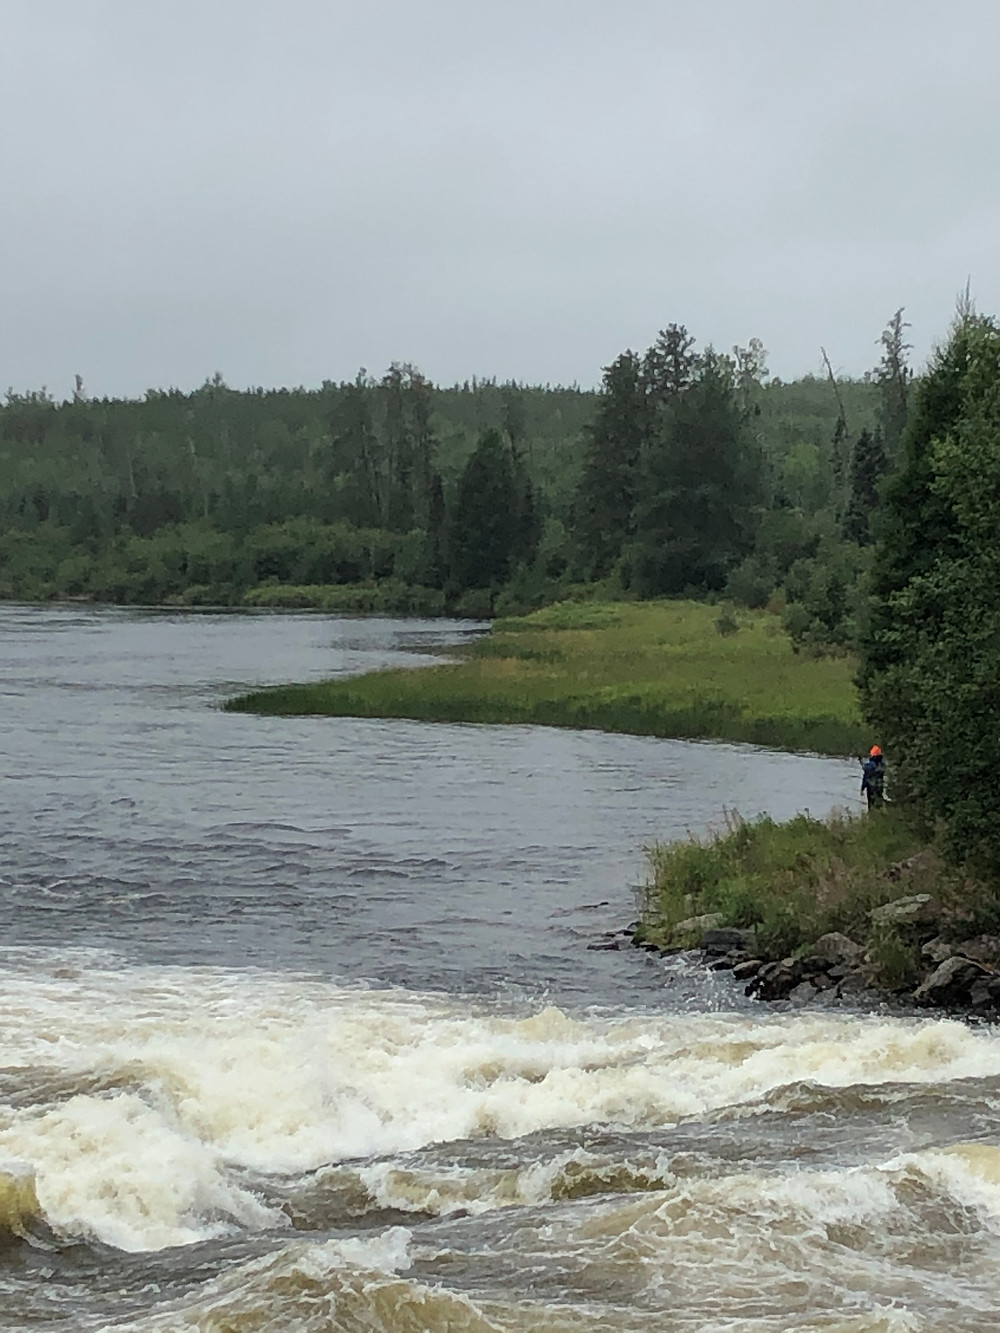 Fishing at the rapids on a fly in fishing trip in Northern Ontario, Canada